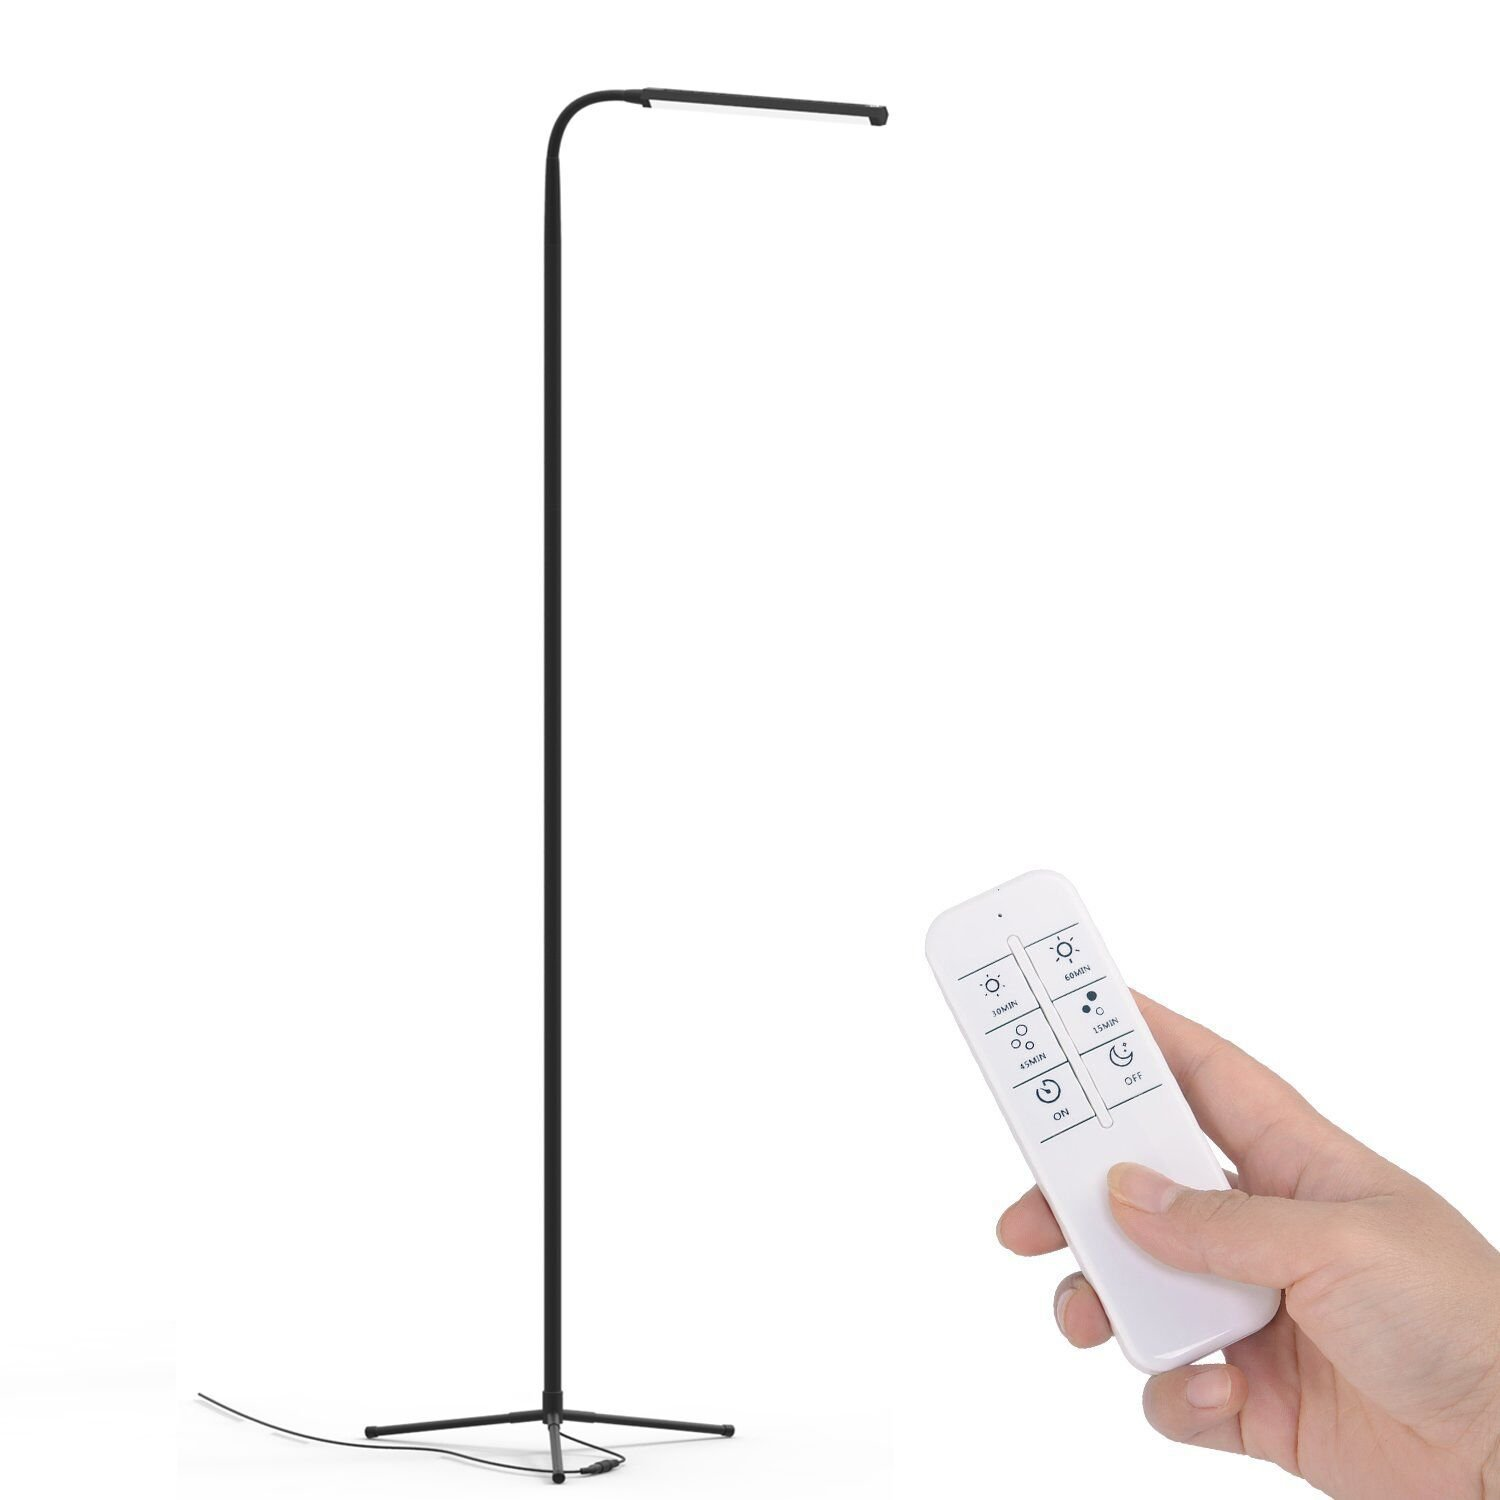 F9 Touch LED Floor Light Standing Floor Lamp Read for Living Room Bedroom with Remote Control 12 Levels Dimmable Lighting Lamps f9 modern touch led standing floor lamp reading for living room bedroom with remote control 12 levels dimmable 3000 6000k black